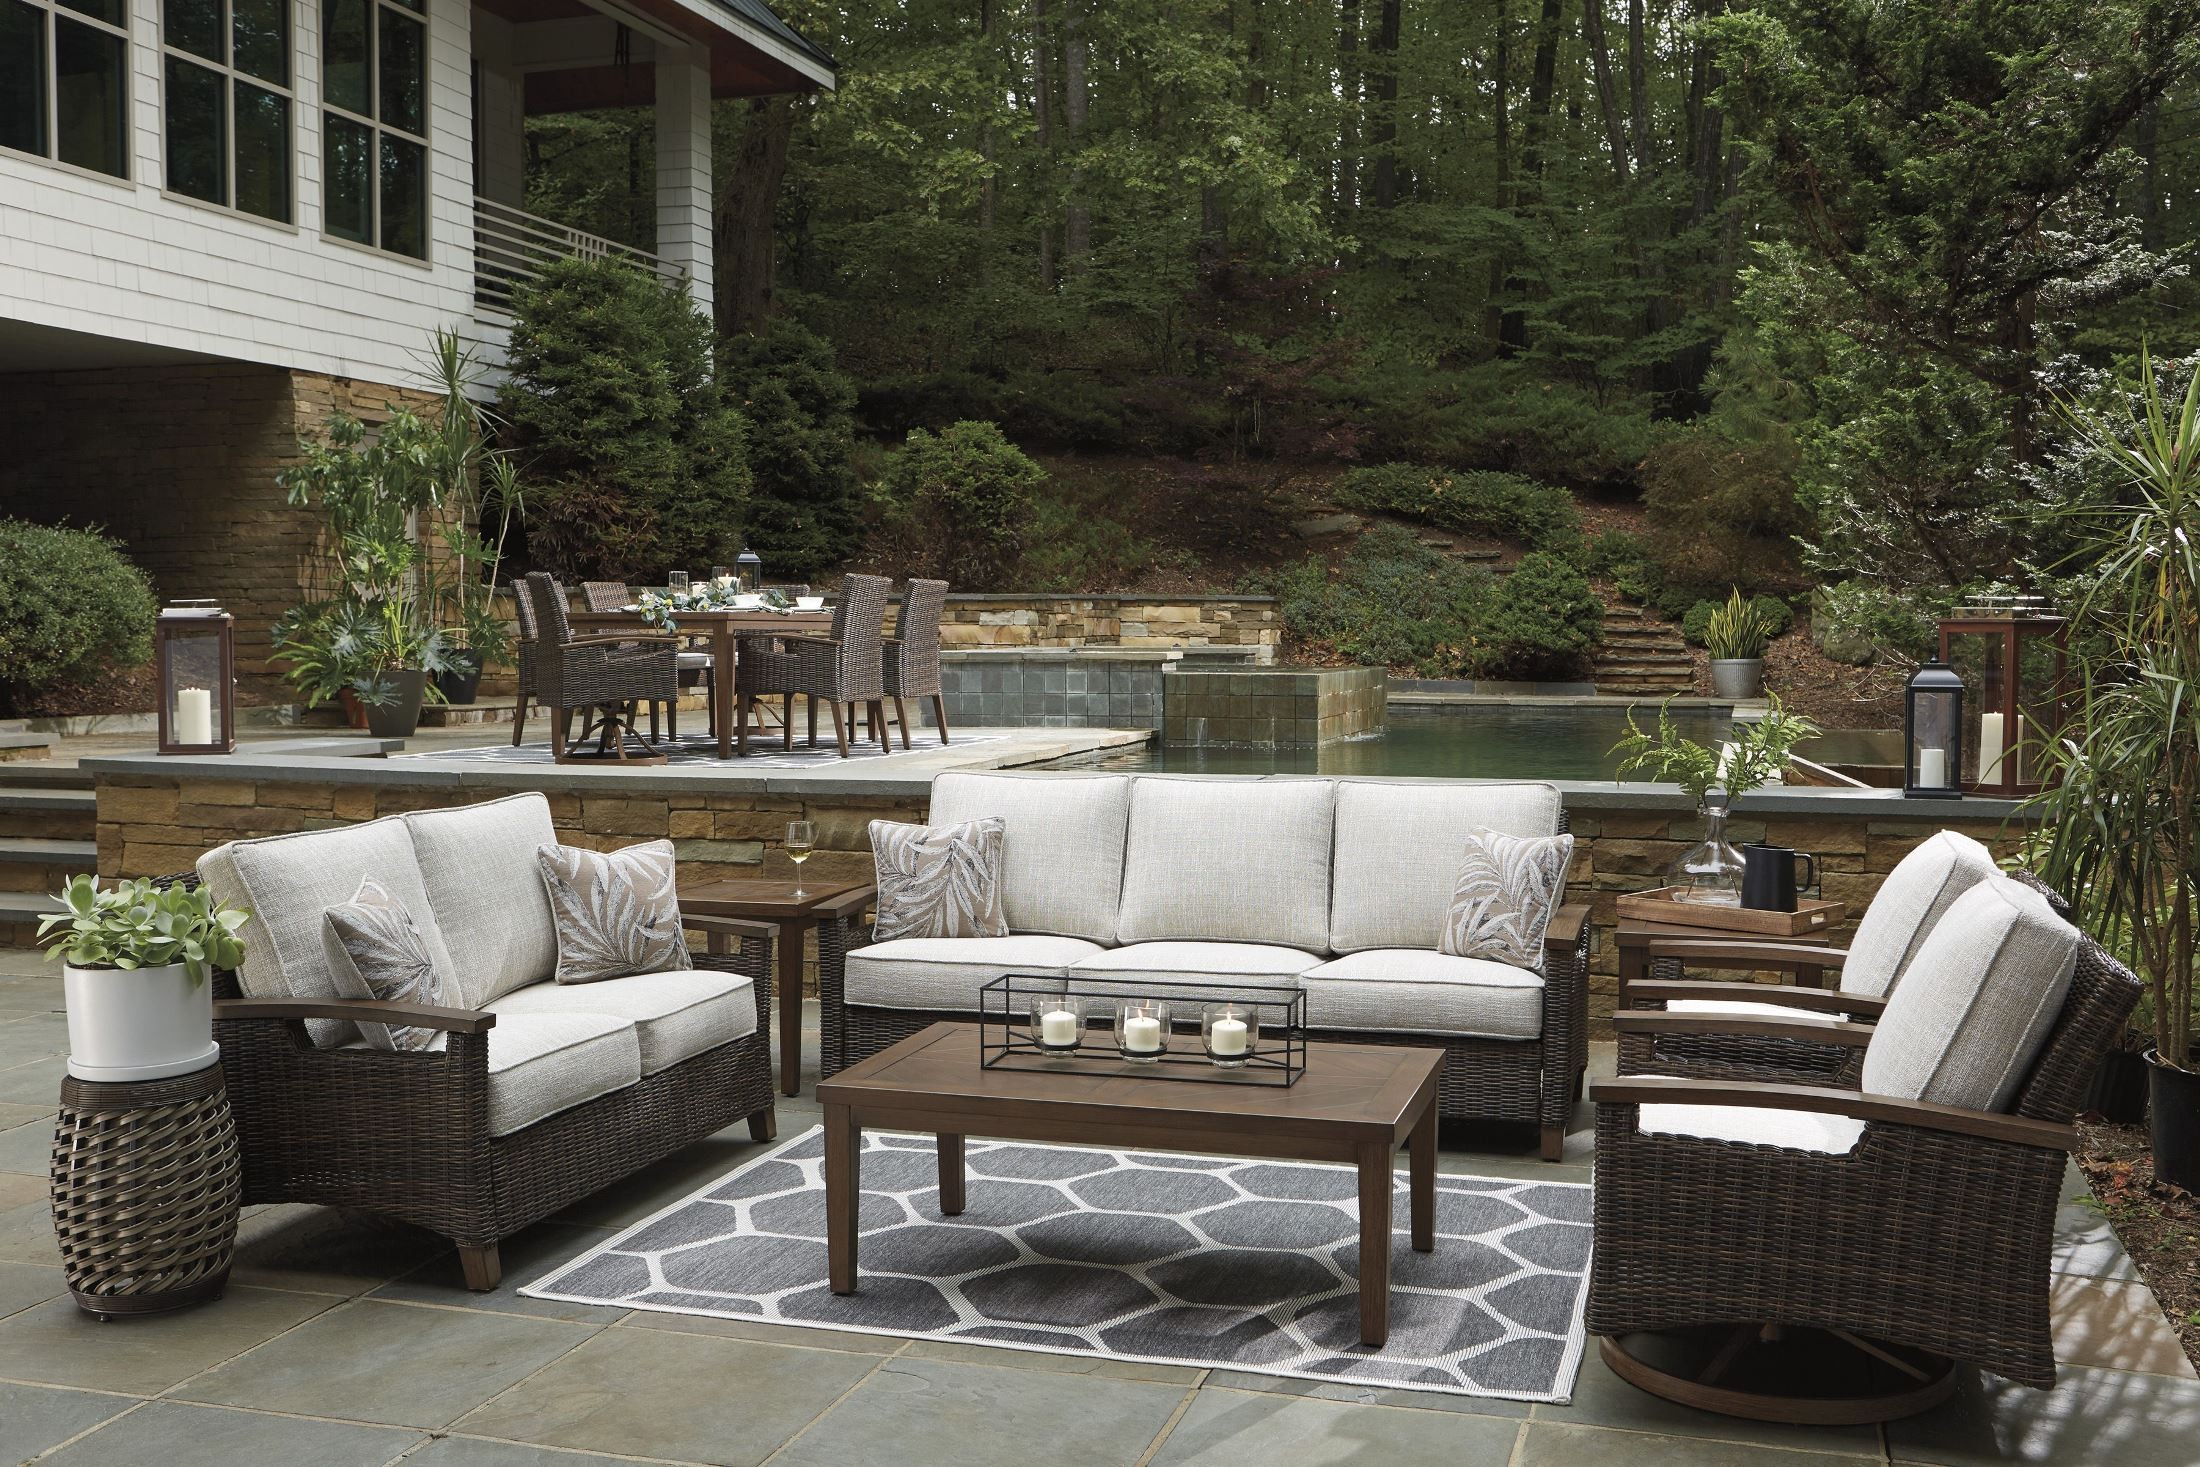 Paradise Trail Medium Brown Outdoor Living Room Set with ... on Outdoor Living Room Set id=46202